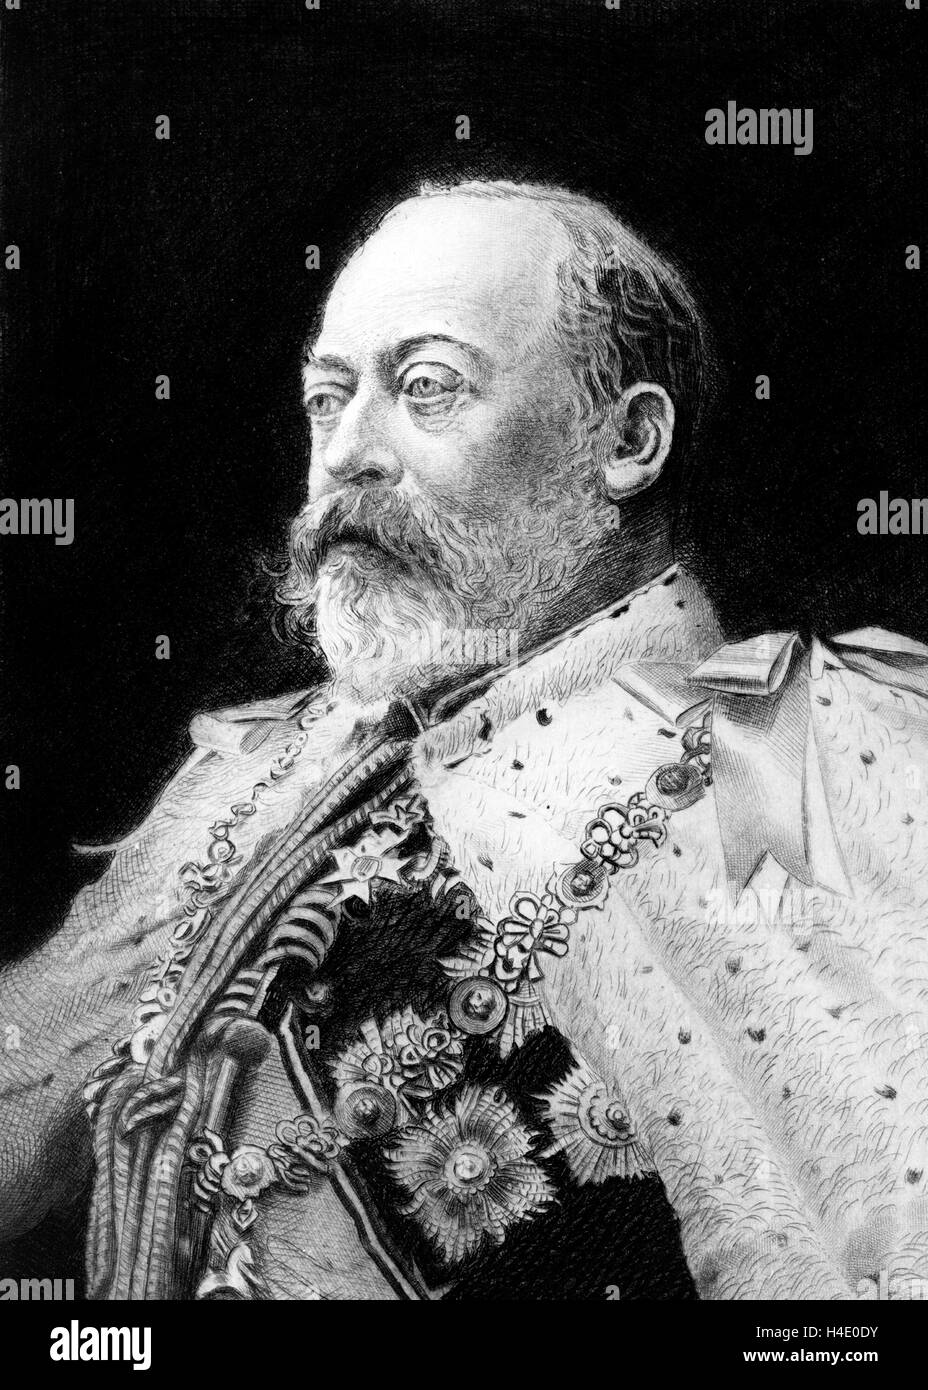 Edward VII. Portrait of King Edward VII of the United Kingdom (1841-1910), who reigned from 1901 until his death - Stock Image